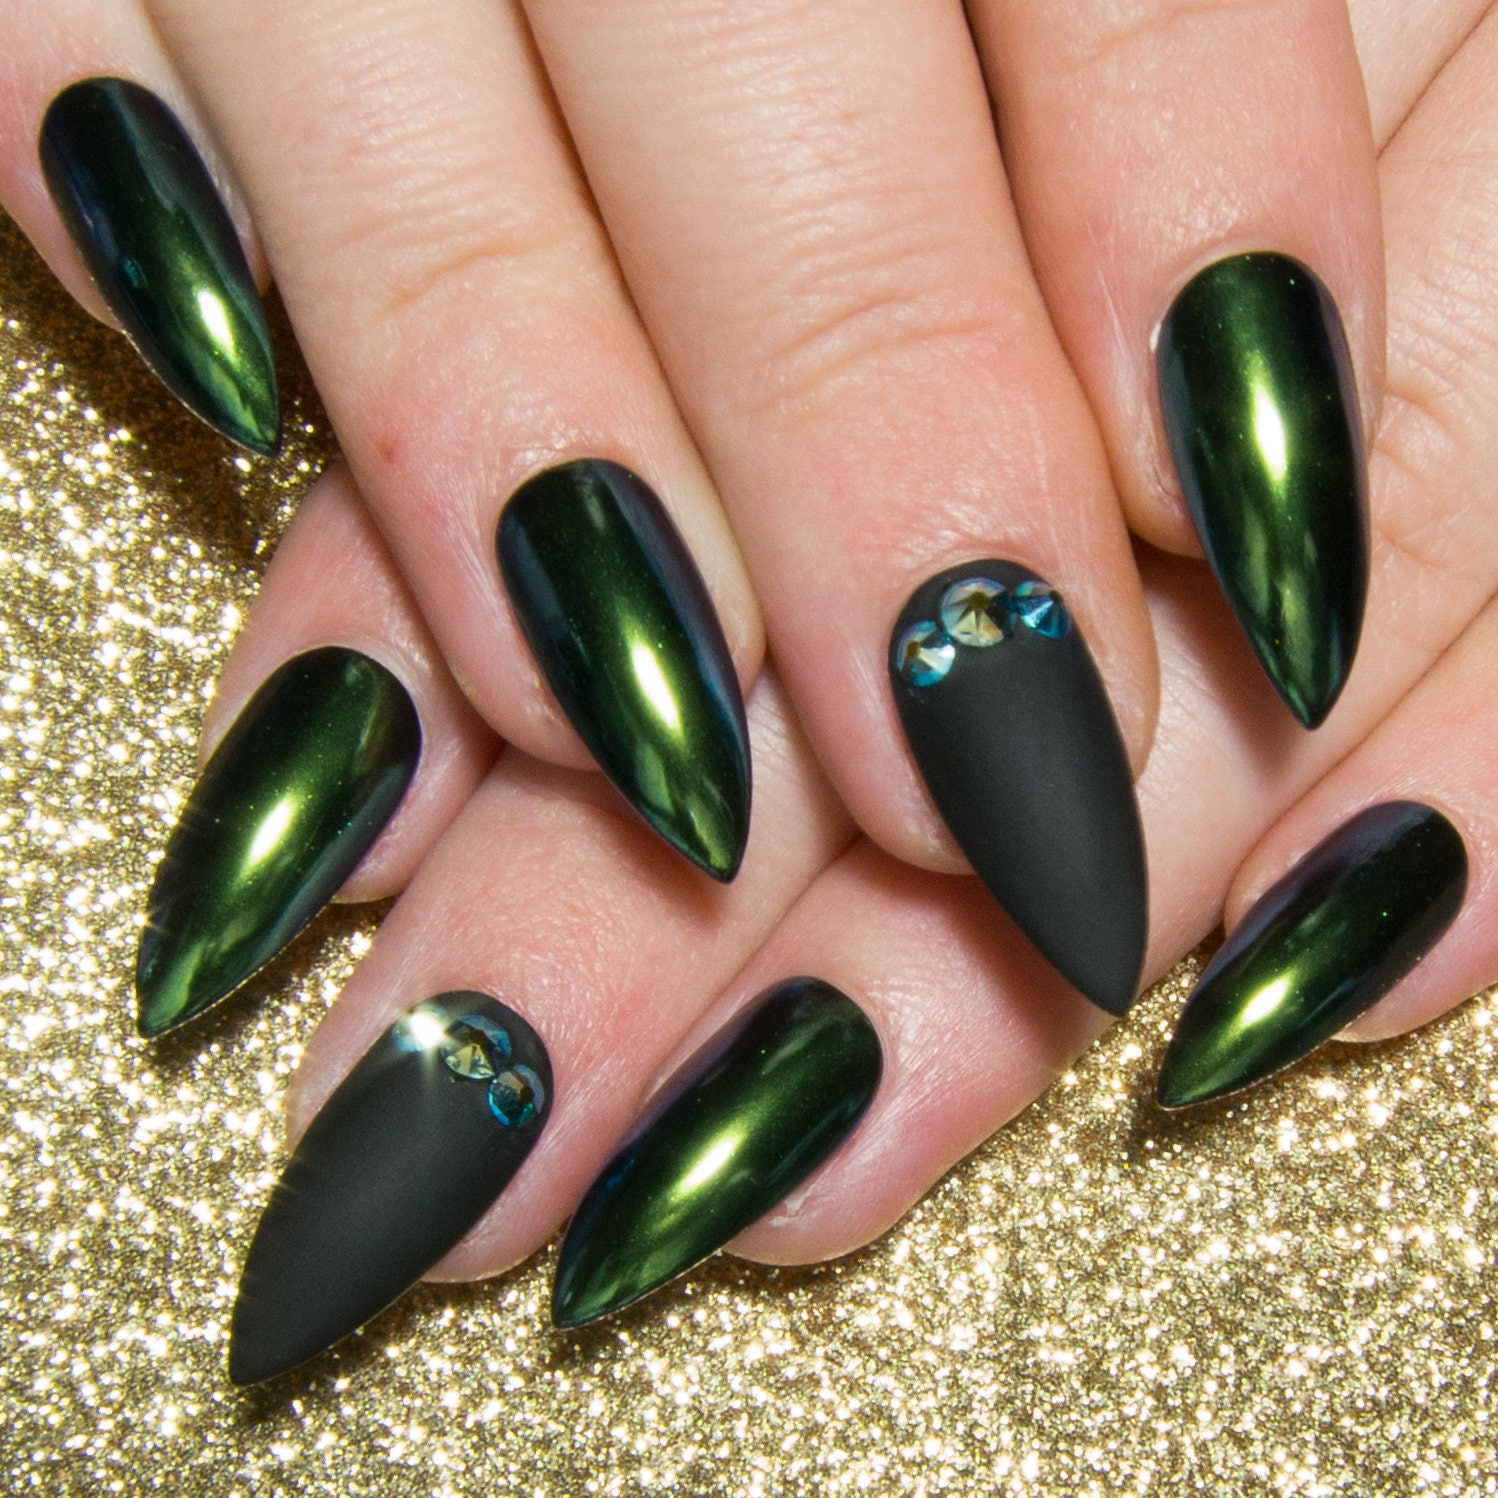 Fake Nails: Chrome Acrylic Nails Crystal Fake Nails Stiletto Press On